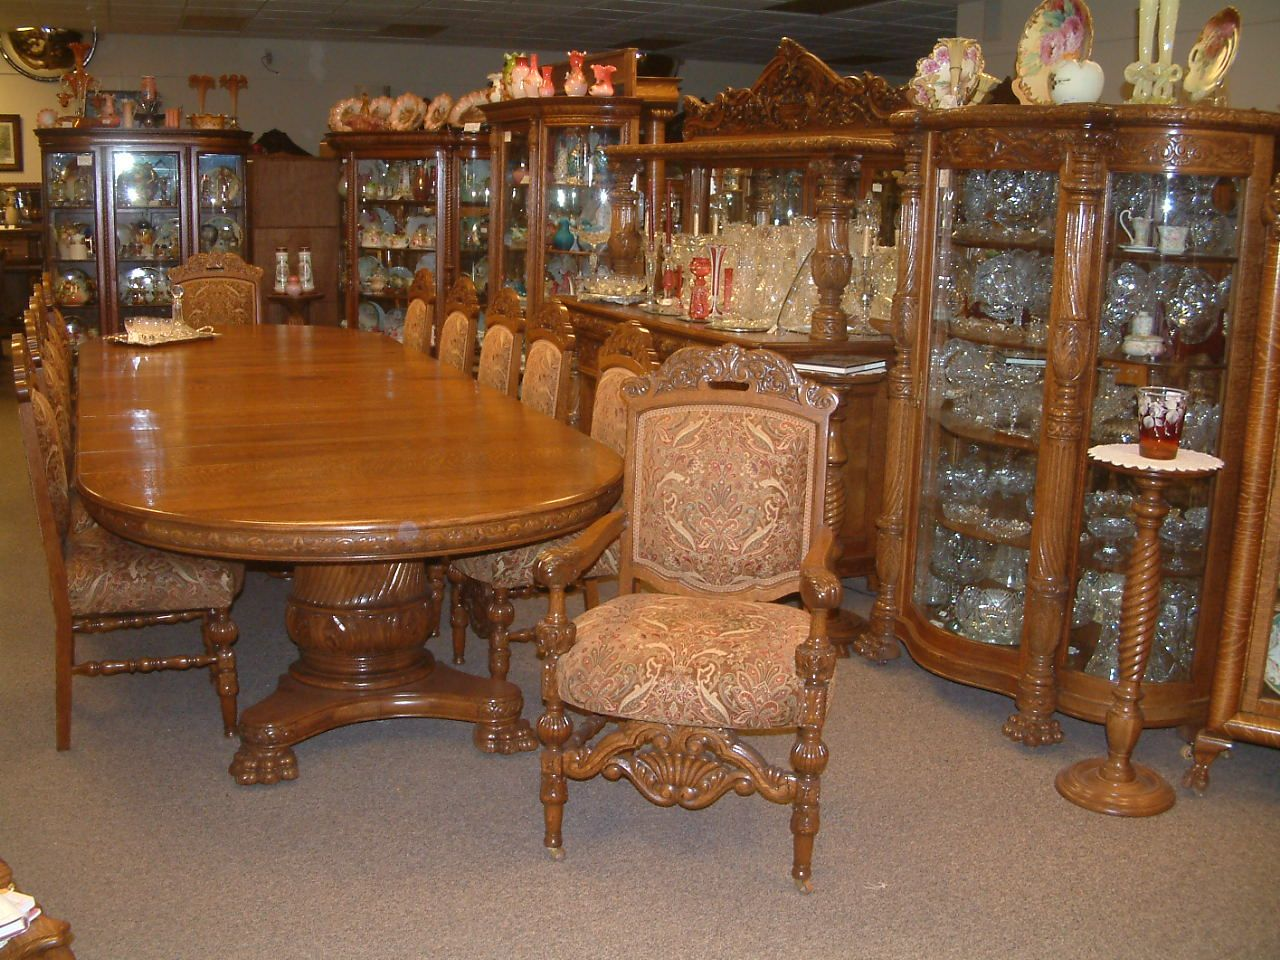 R J Horner New York Dining Group 14 Banquet Table Matching Buffet TablesVictorian FurnitureAntique FurnitureChina CabinetsBuffetDining